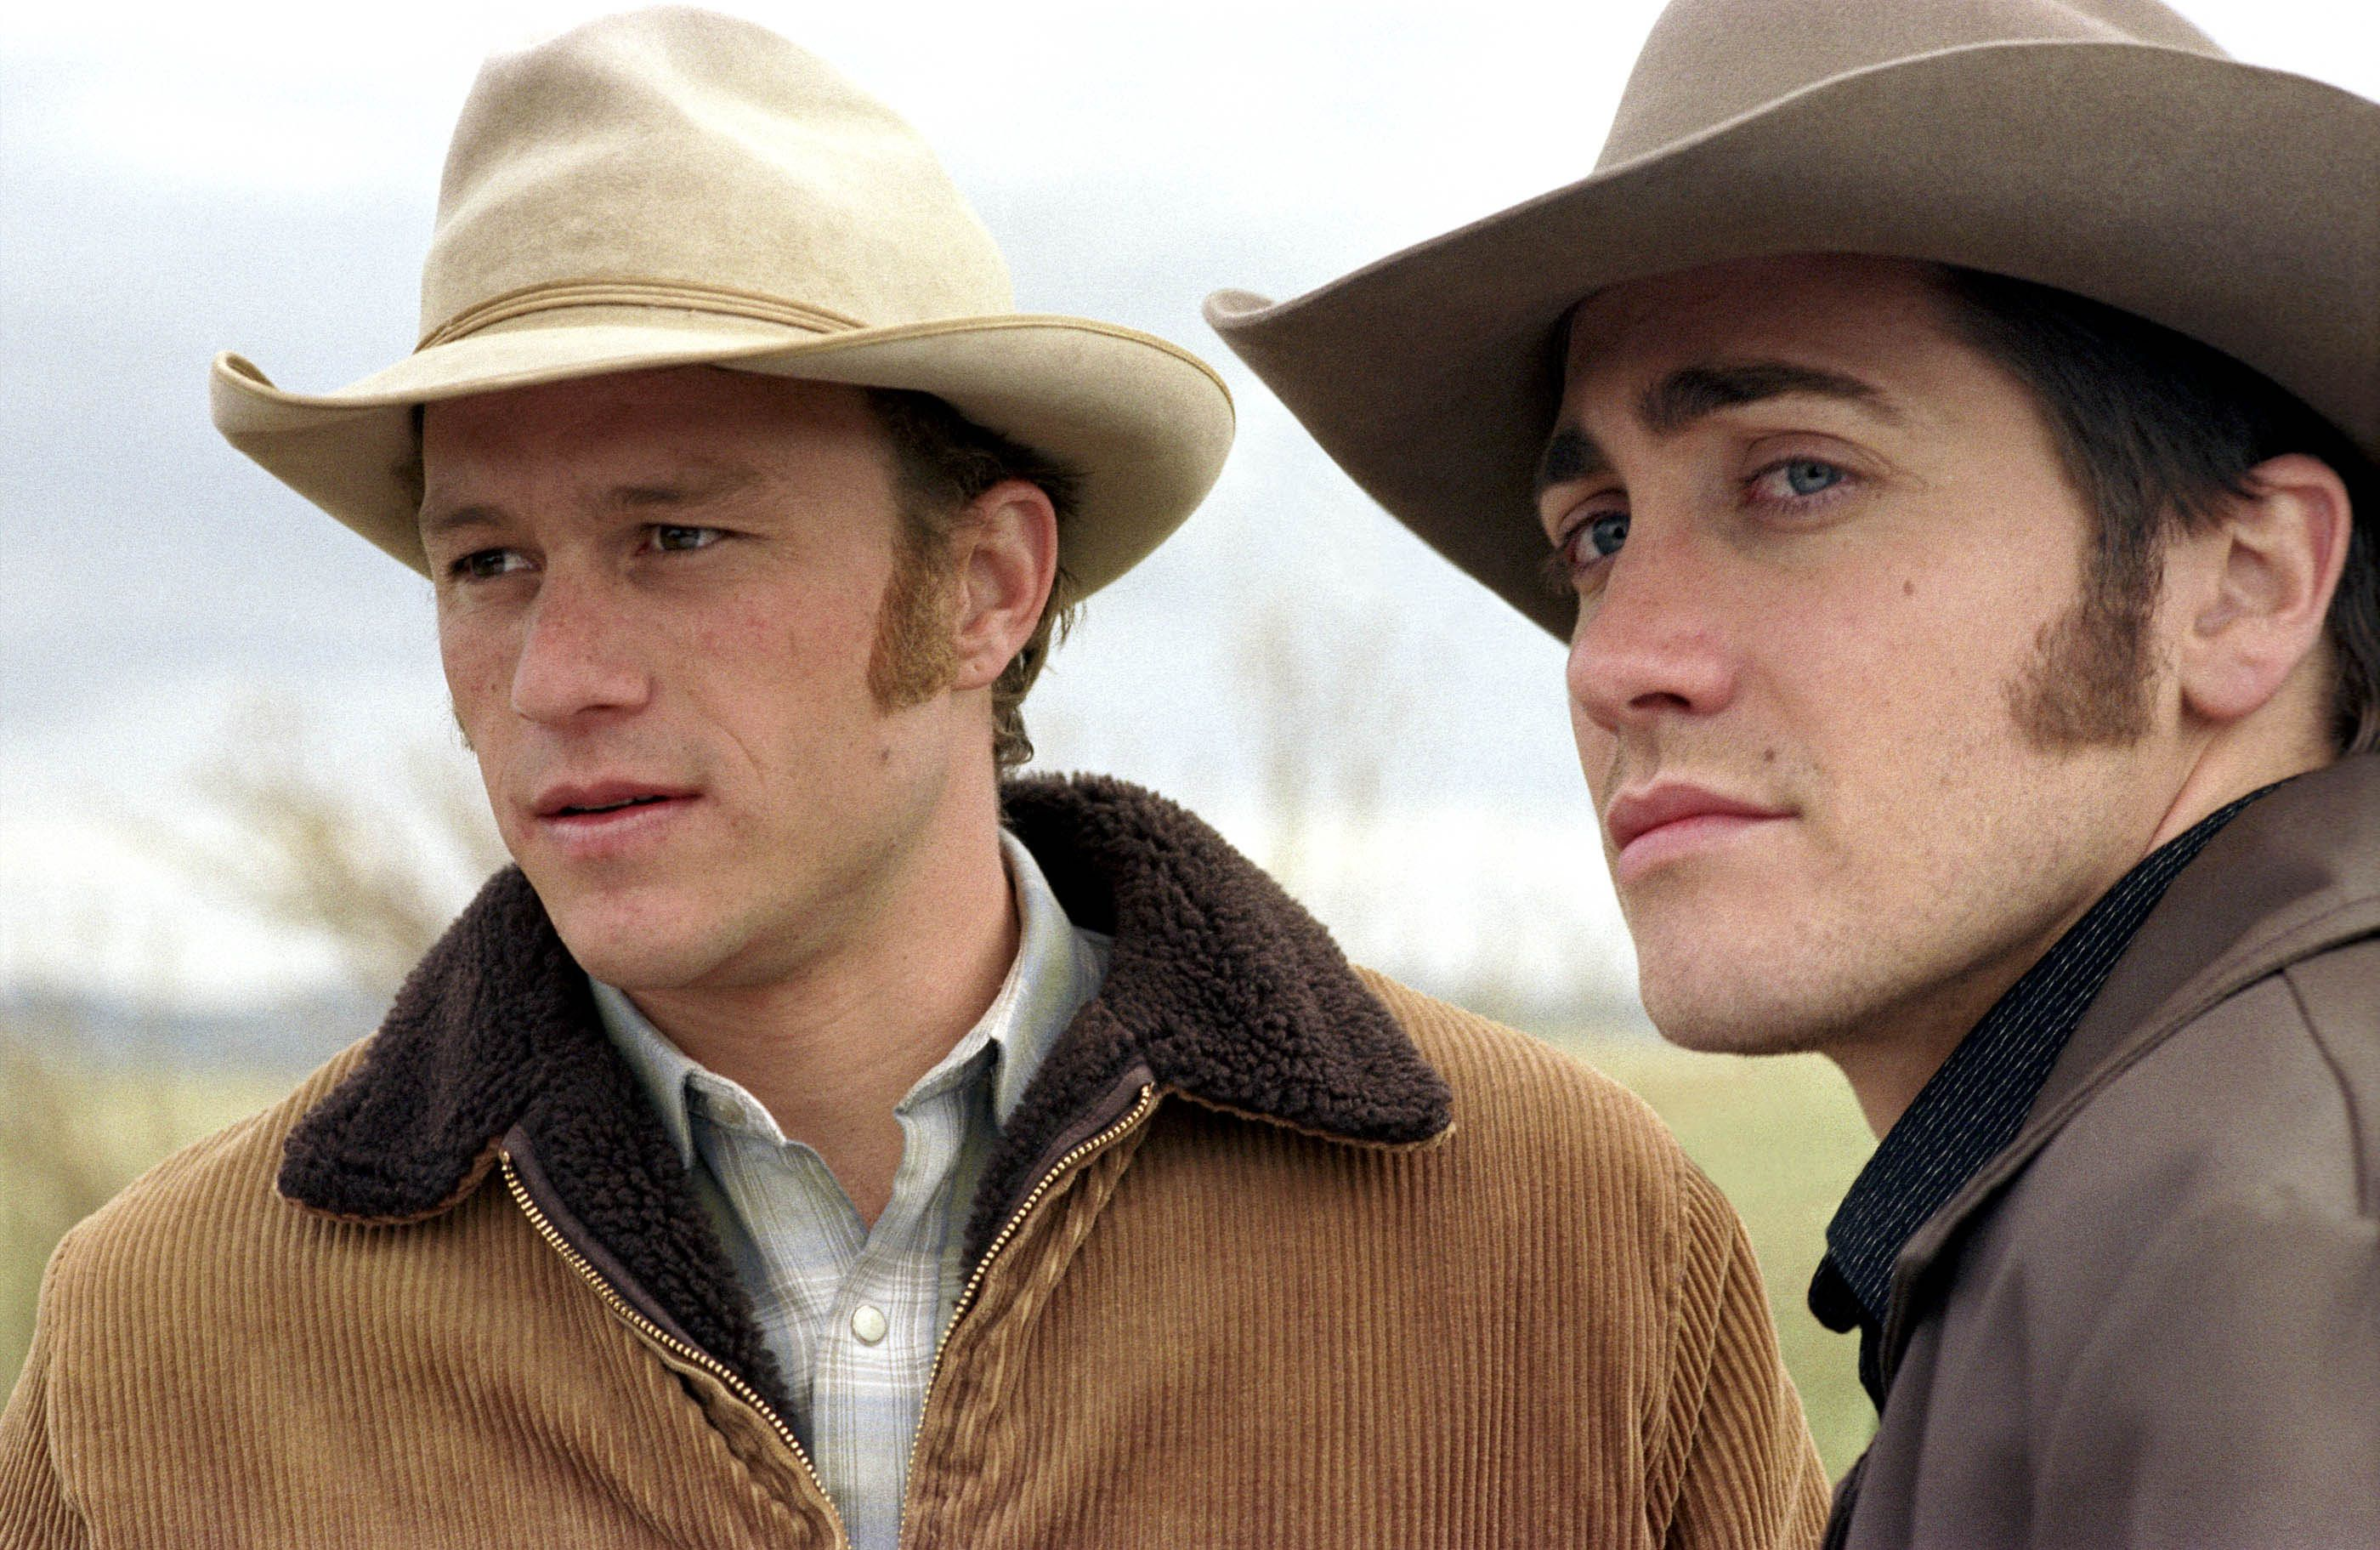 BKMFGT BROKEBACK MOUNTAIN (2005) HEATH LEDGER, JAKE GYLLENHAAL BRBA 001 - AK